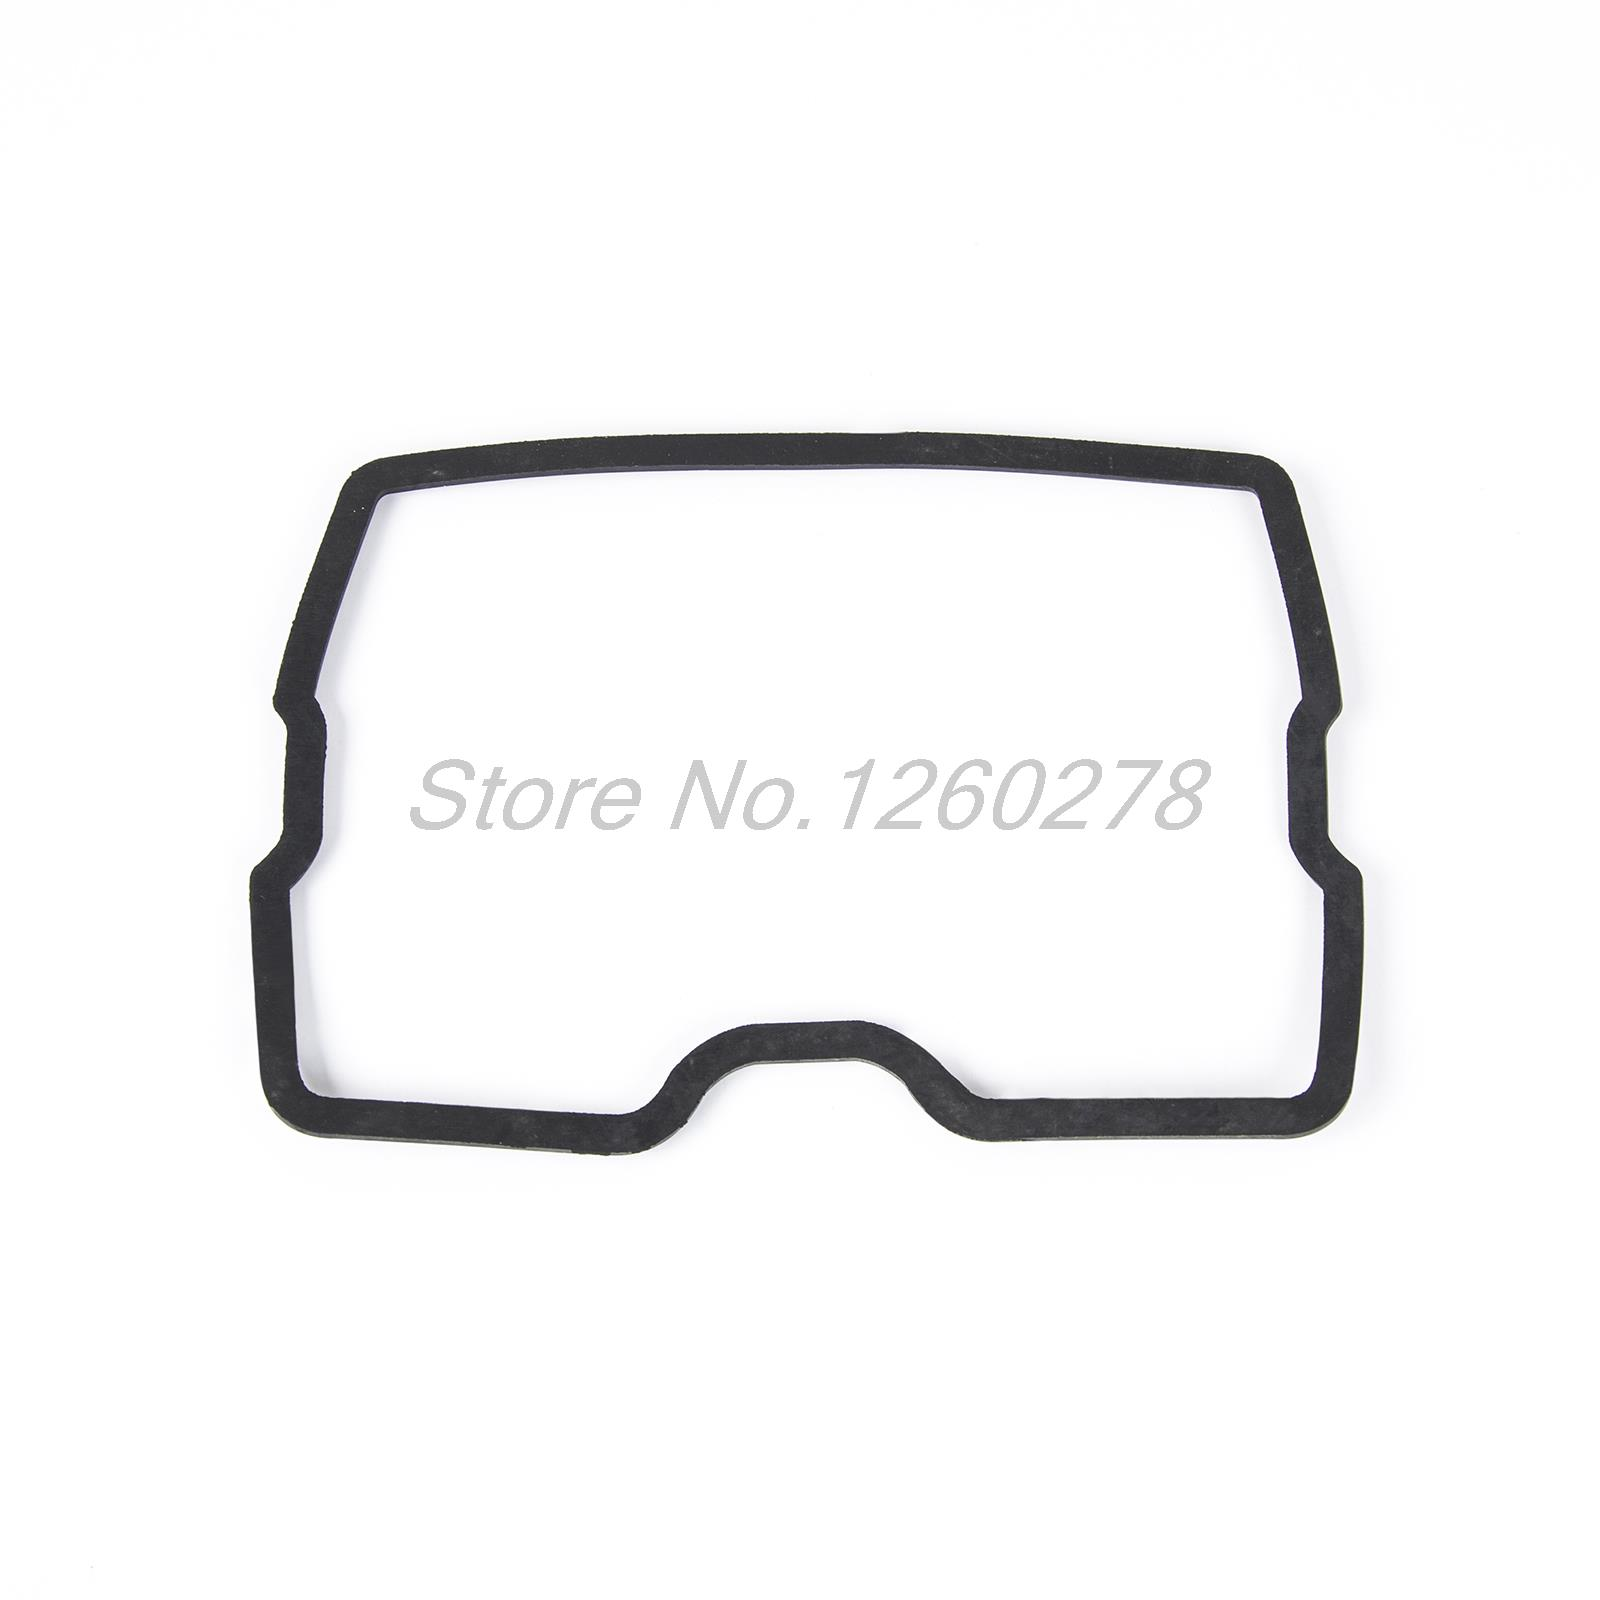 Cylinder Head Cover Gasket for Honda Rebel CMX250 CA250